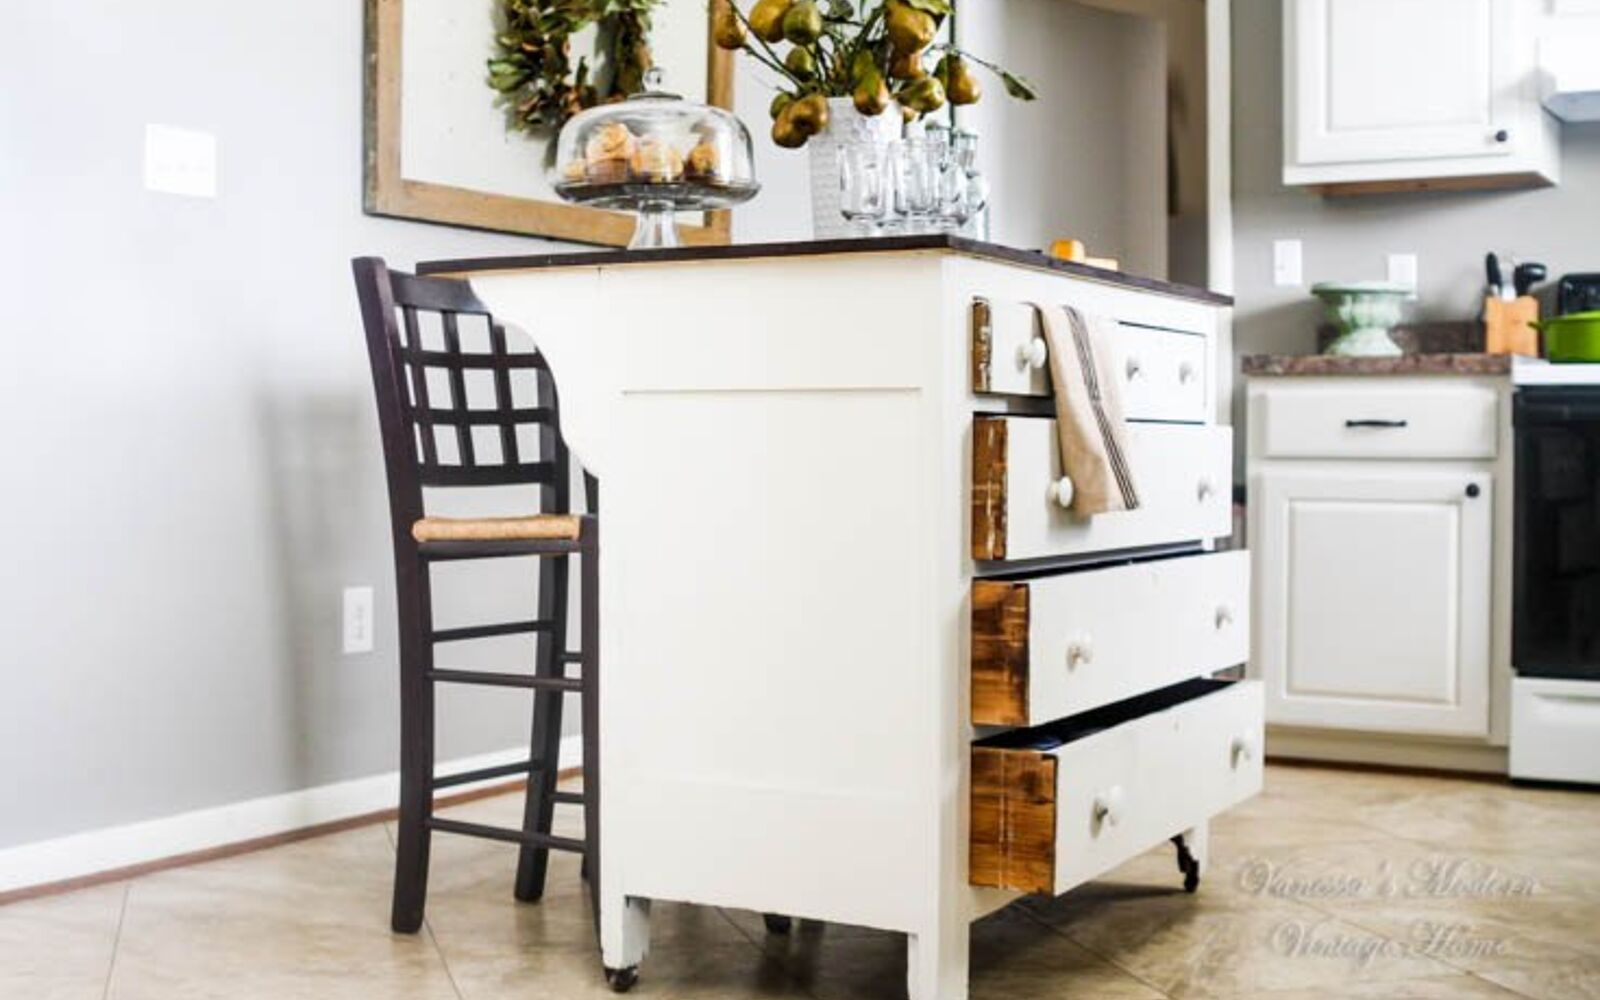 s 31 storage hacks that will instantly declutter your kitchen, Transform a dresser into a kitchen island